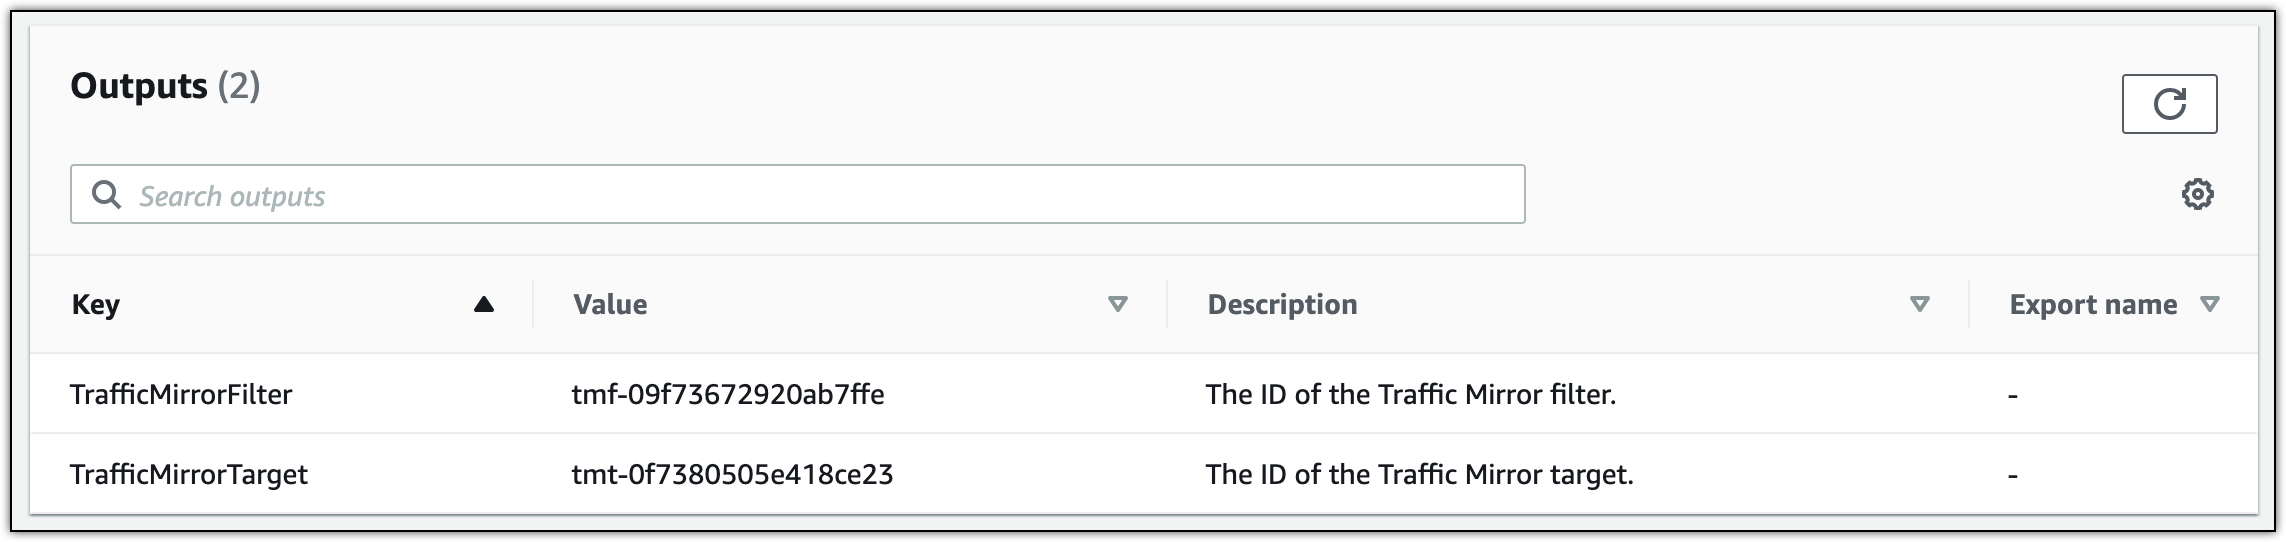 Outputs of the CloudFormation stack in the AWS Management Console.